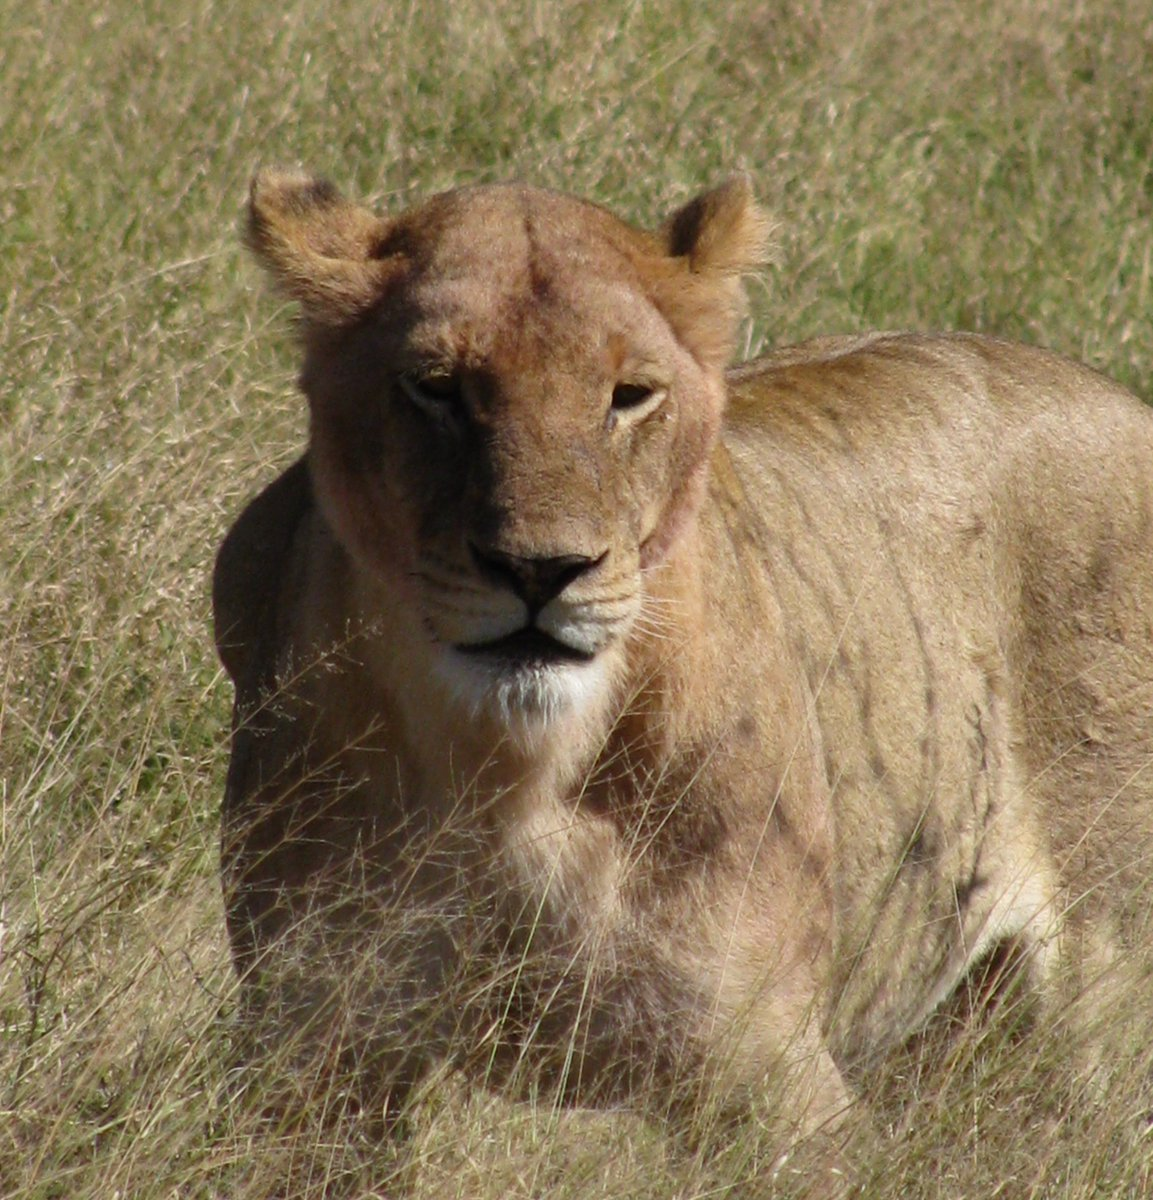 #SaturdayMotivation #SaturdayMotivation   There is simply nowhere in the world to equal Kruger National Park. When you visit you'll see why... <br>http://pic.twitter.com/mNnppjgQAz